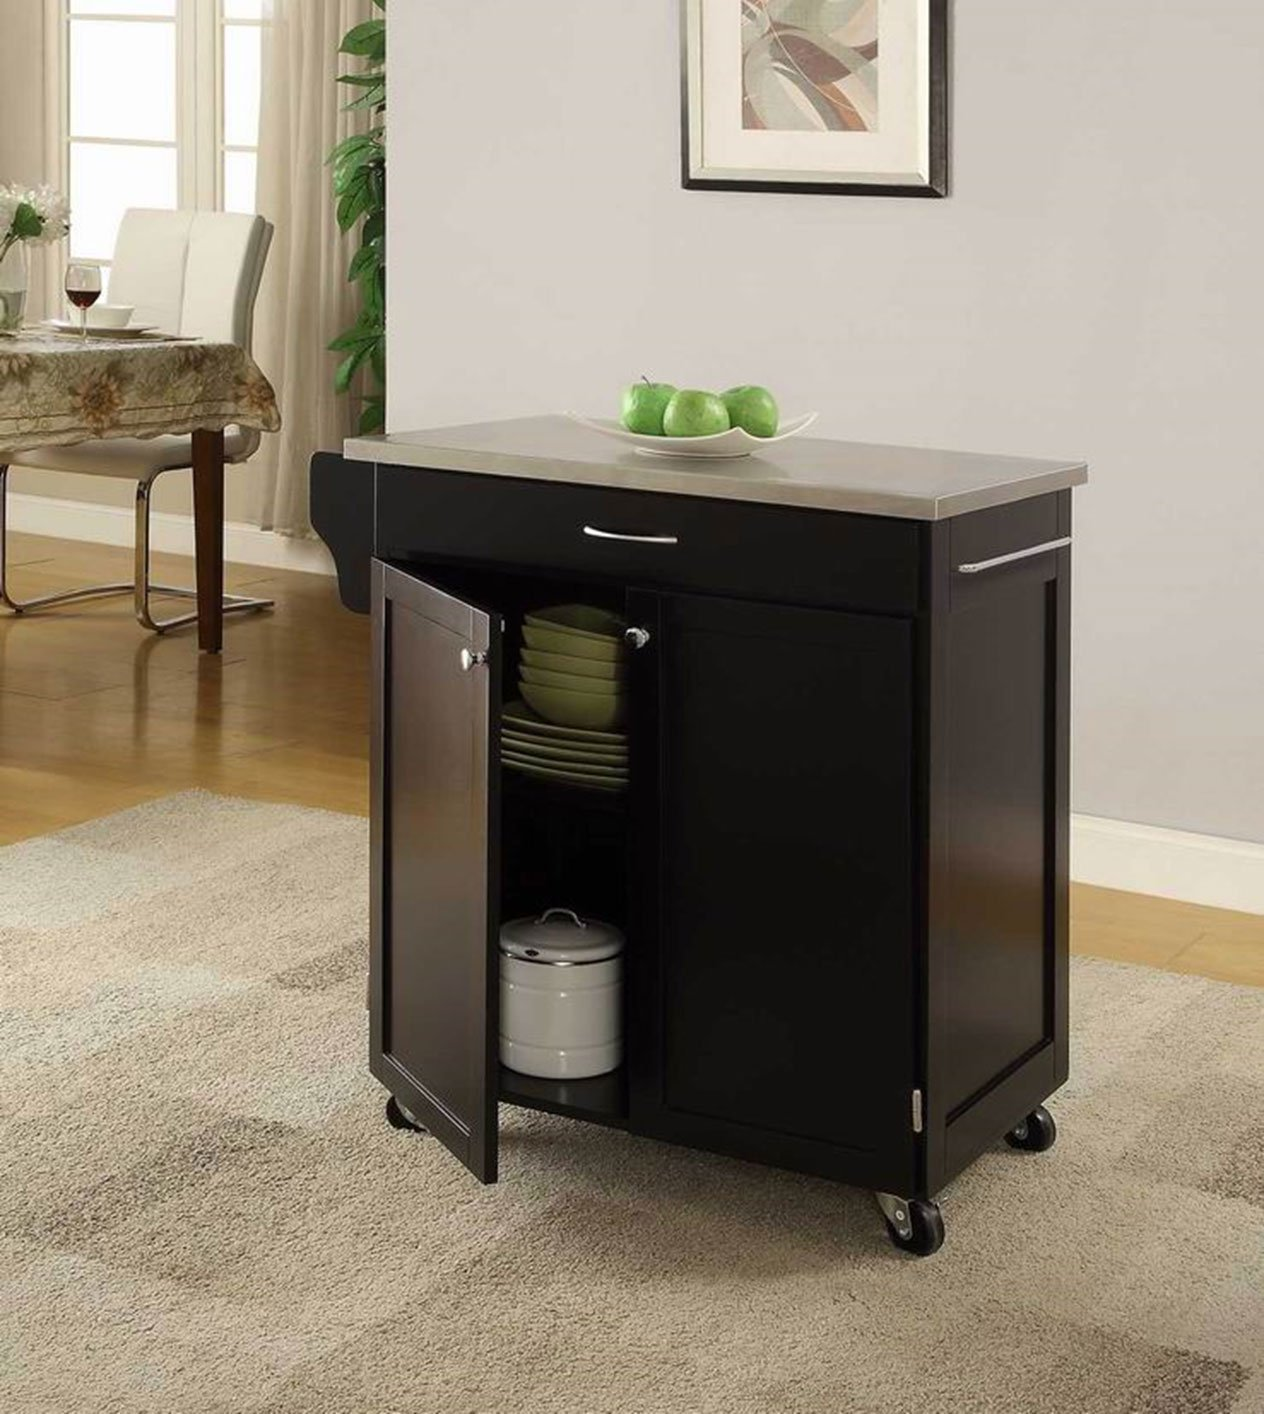 "Oliver and Smith - Nashville Collection - Mobile Kitchen Island Cart on Wheels - Black - Stainless Steel Top - 32"" W x 19"" L x 36"" H 102066-01blk"